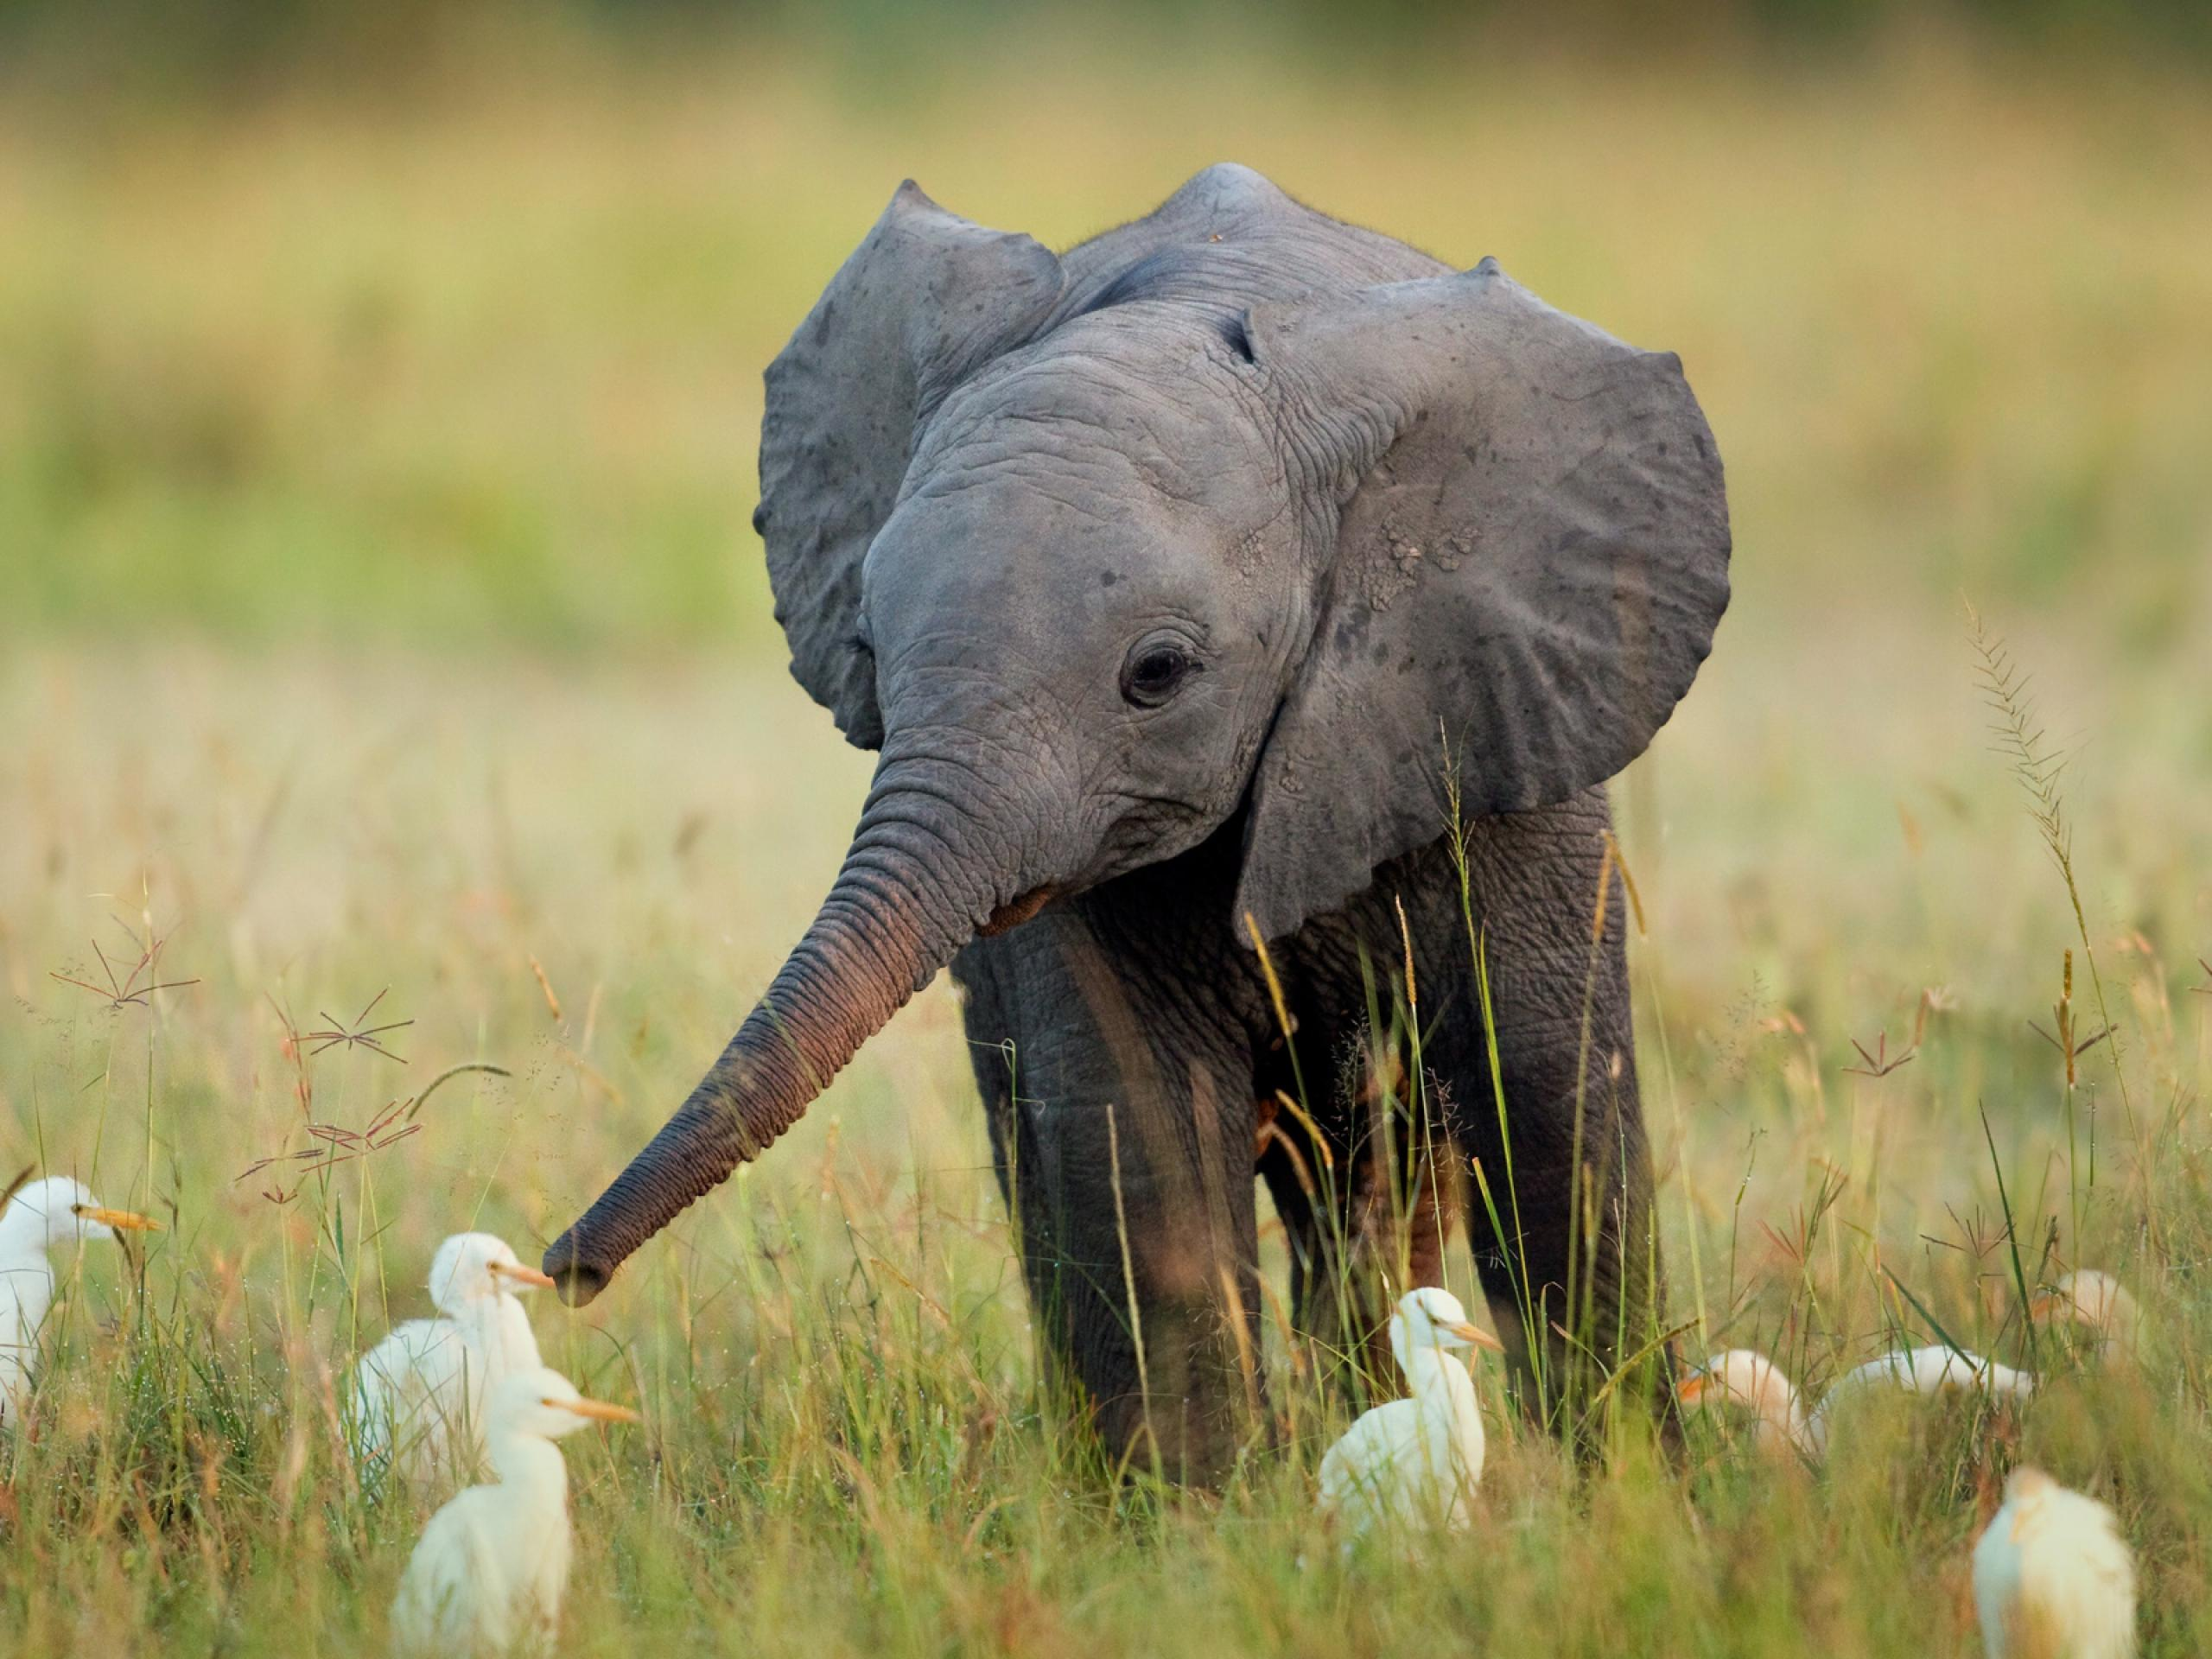 cute-baby-elephant-wallpaper-4.jpg